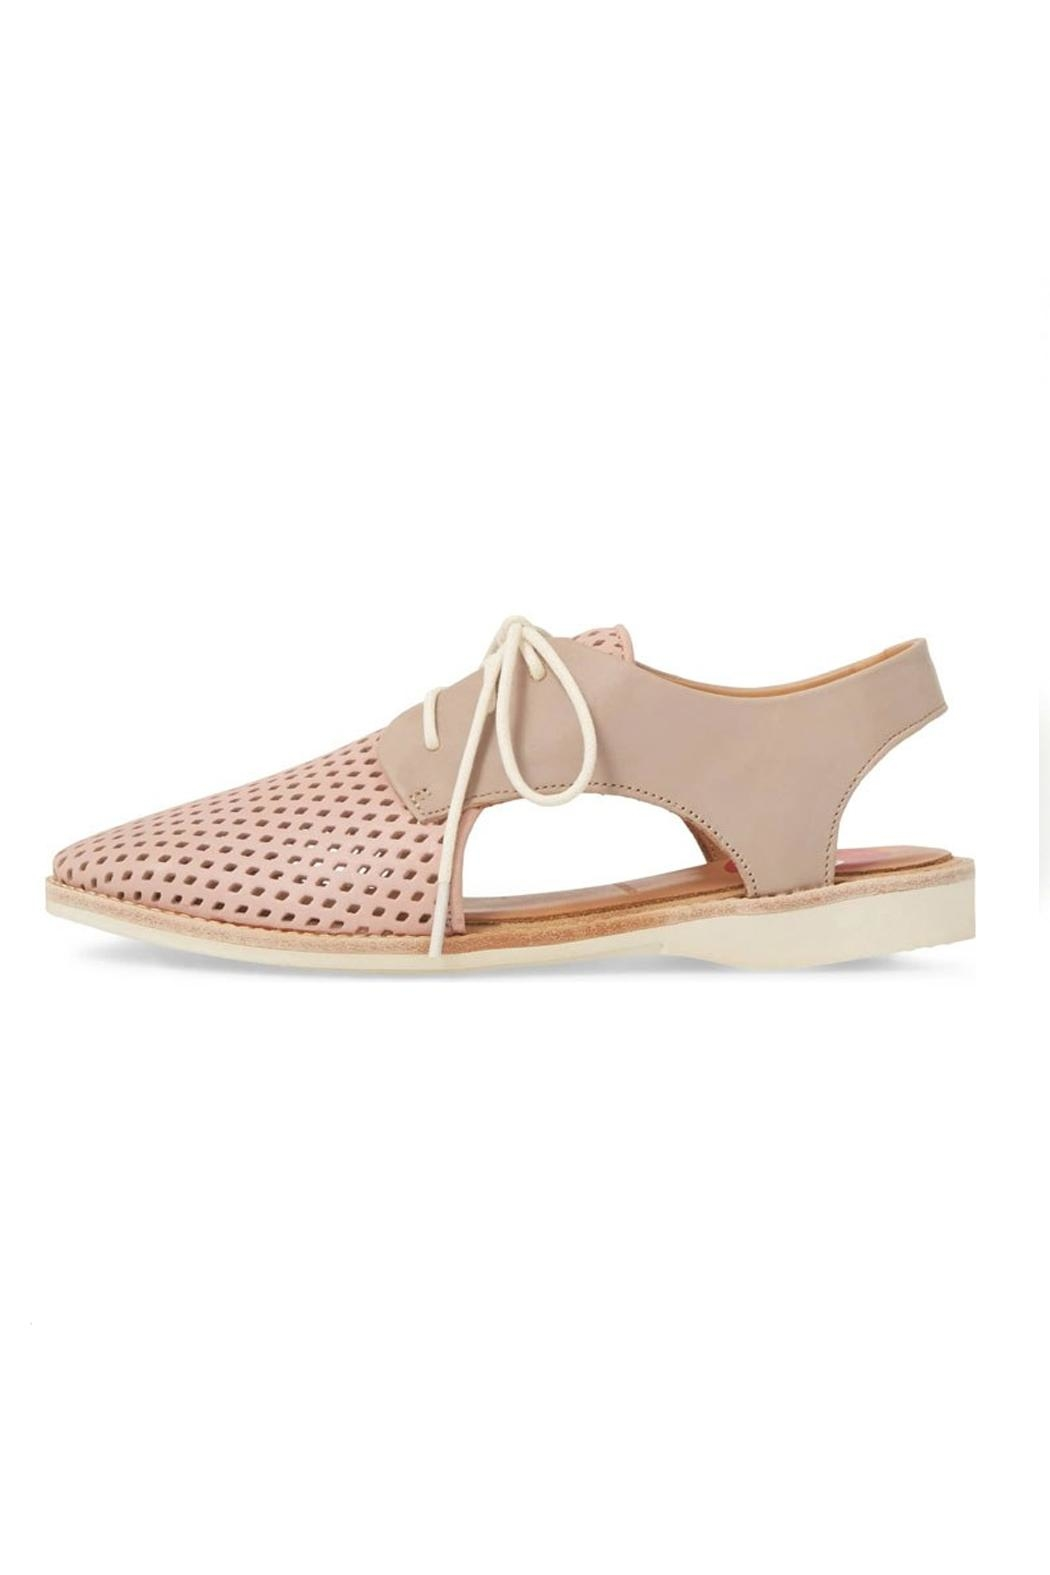 Rollie/Sidecut Lace Up Slingback - Front Cropped Image